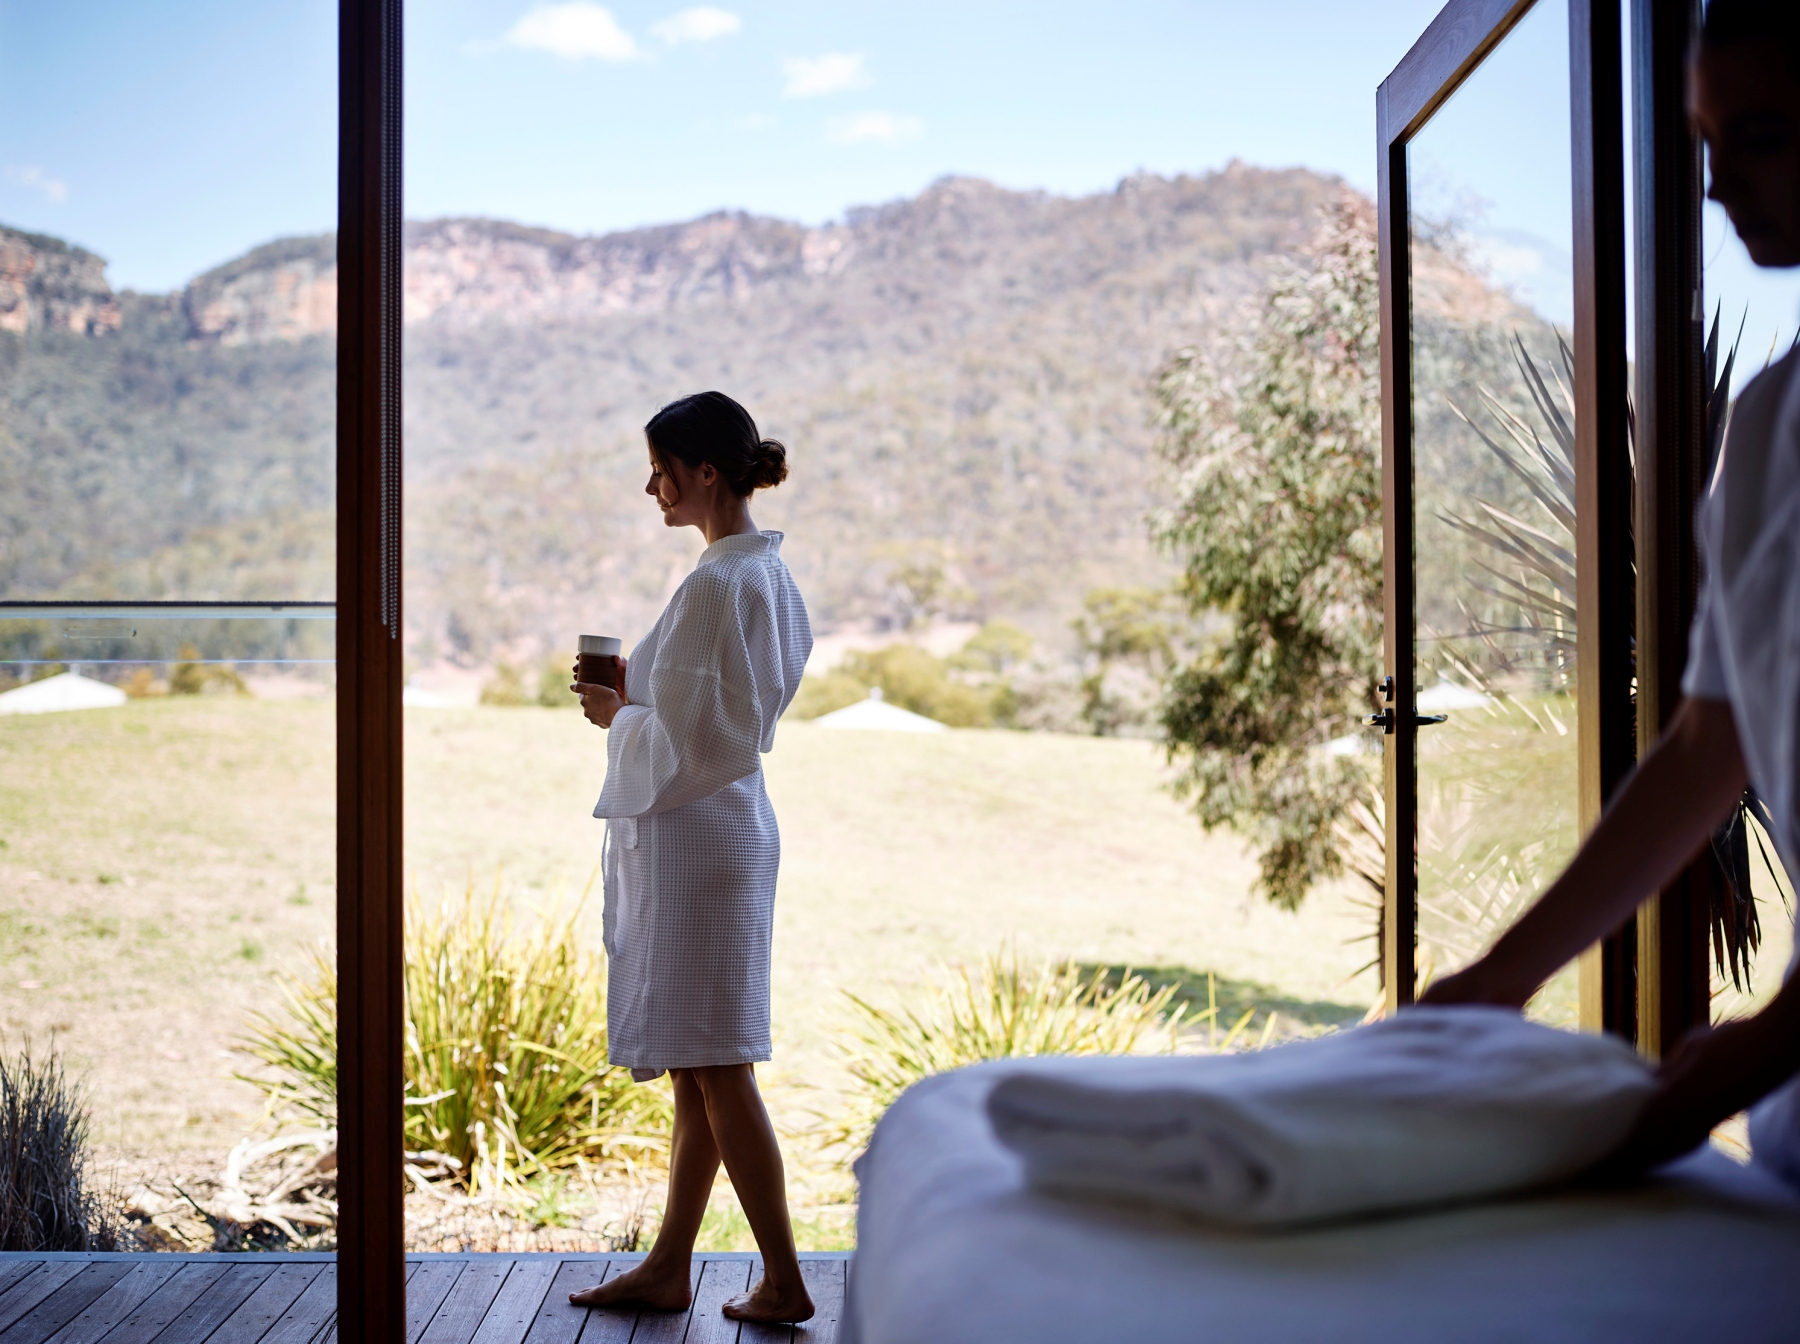 Woman relaxing and enjoying a beverage at Emirates OneandOnly Wolgan Valley spa (Image credit to Emirates OneandOnly Wolgan Valley)